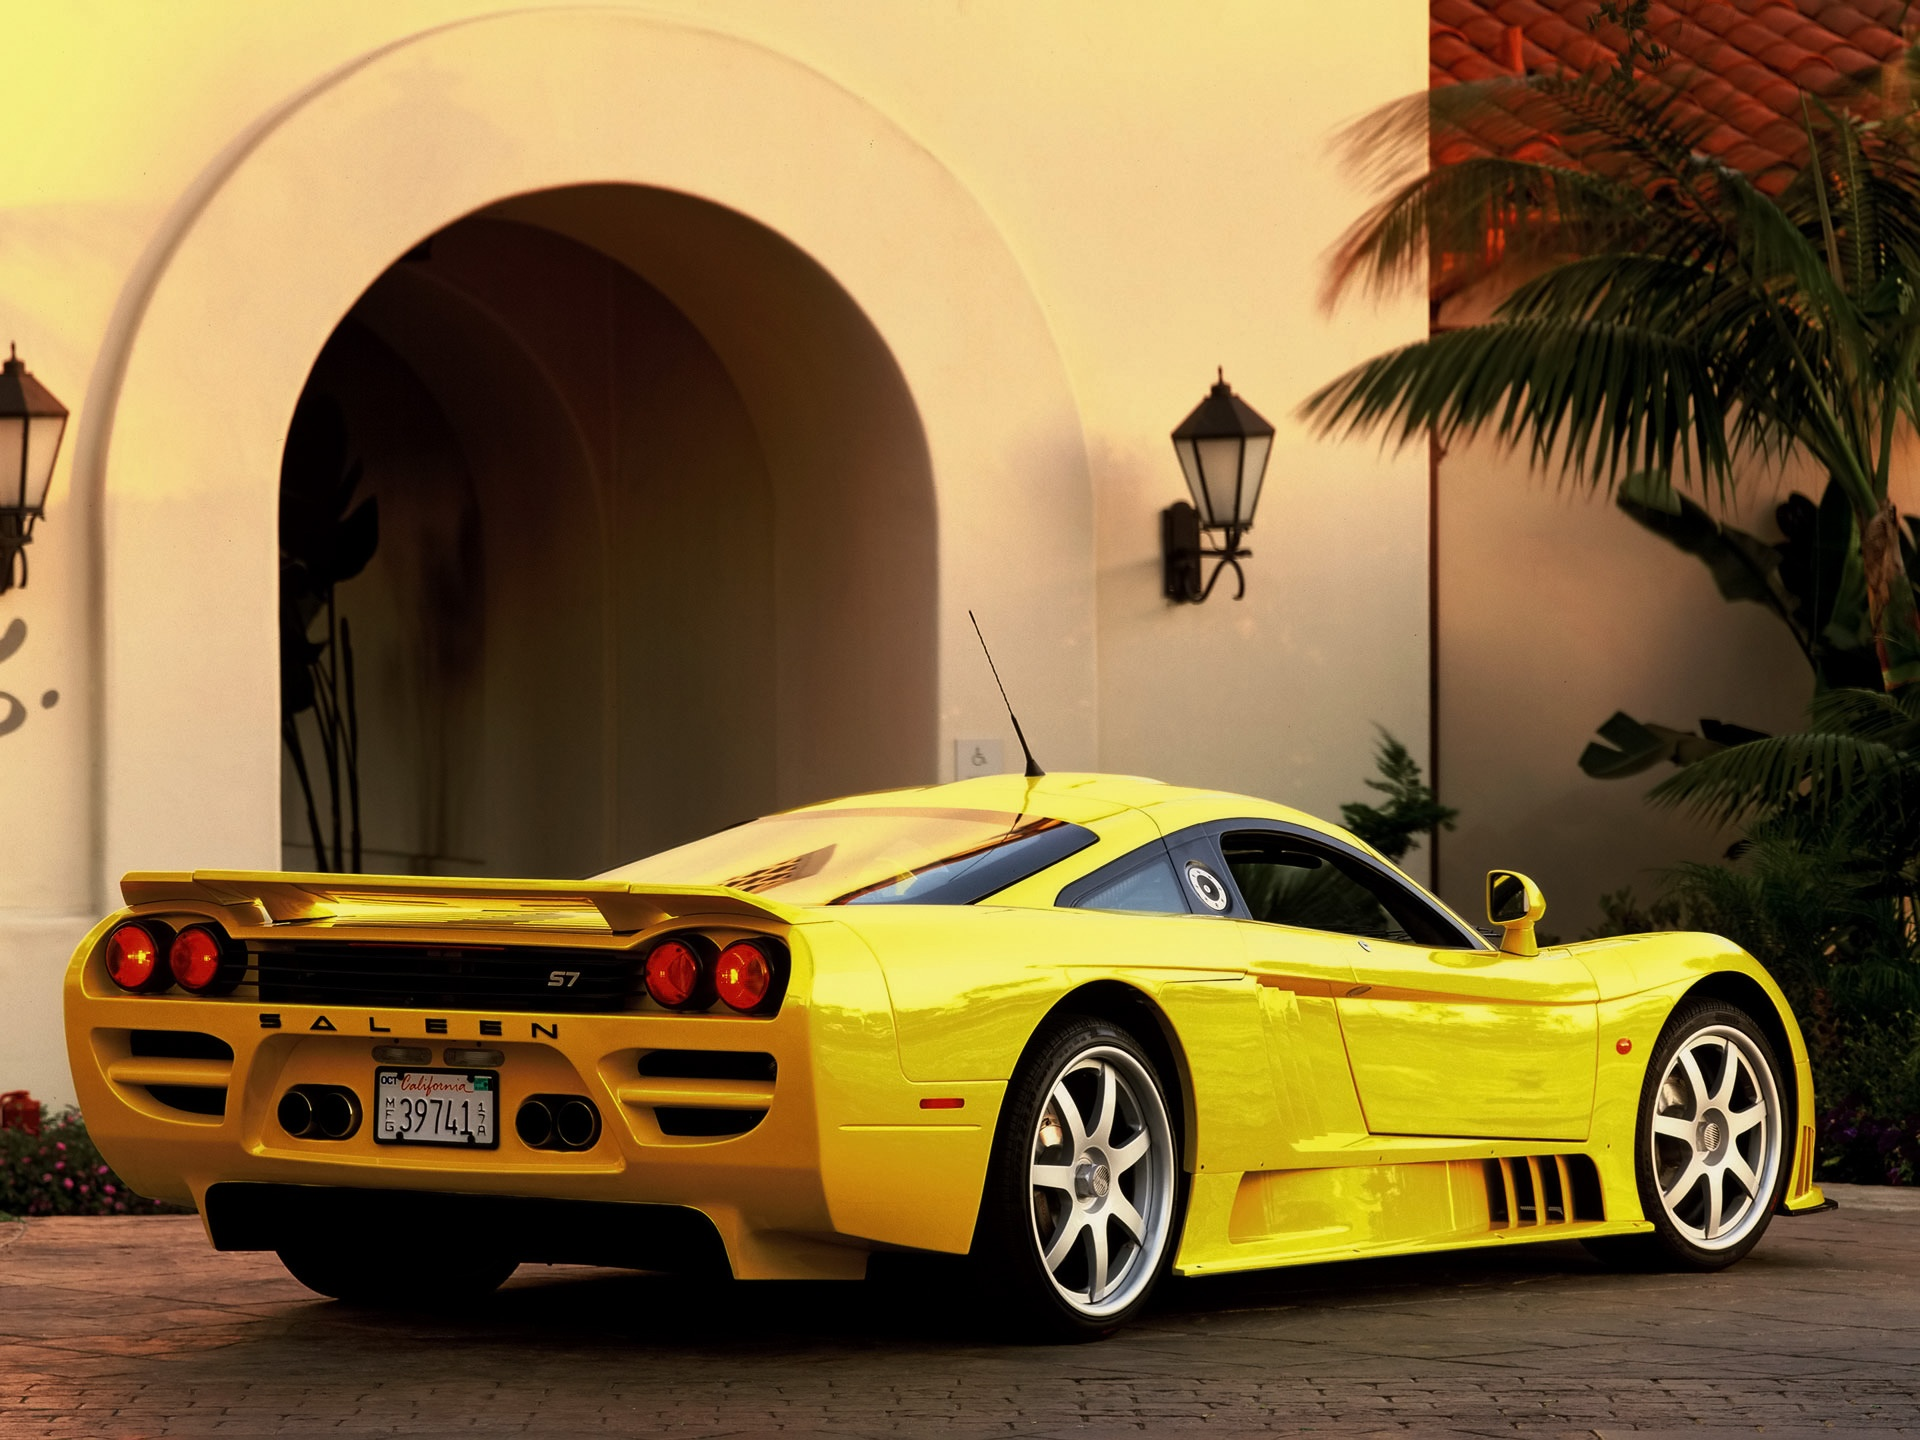 Audi Hd Wallpapers For Mobile Saleen S7 Rear Wallpapers Saleen S7 Rear Stock Photos